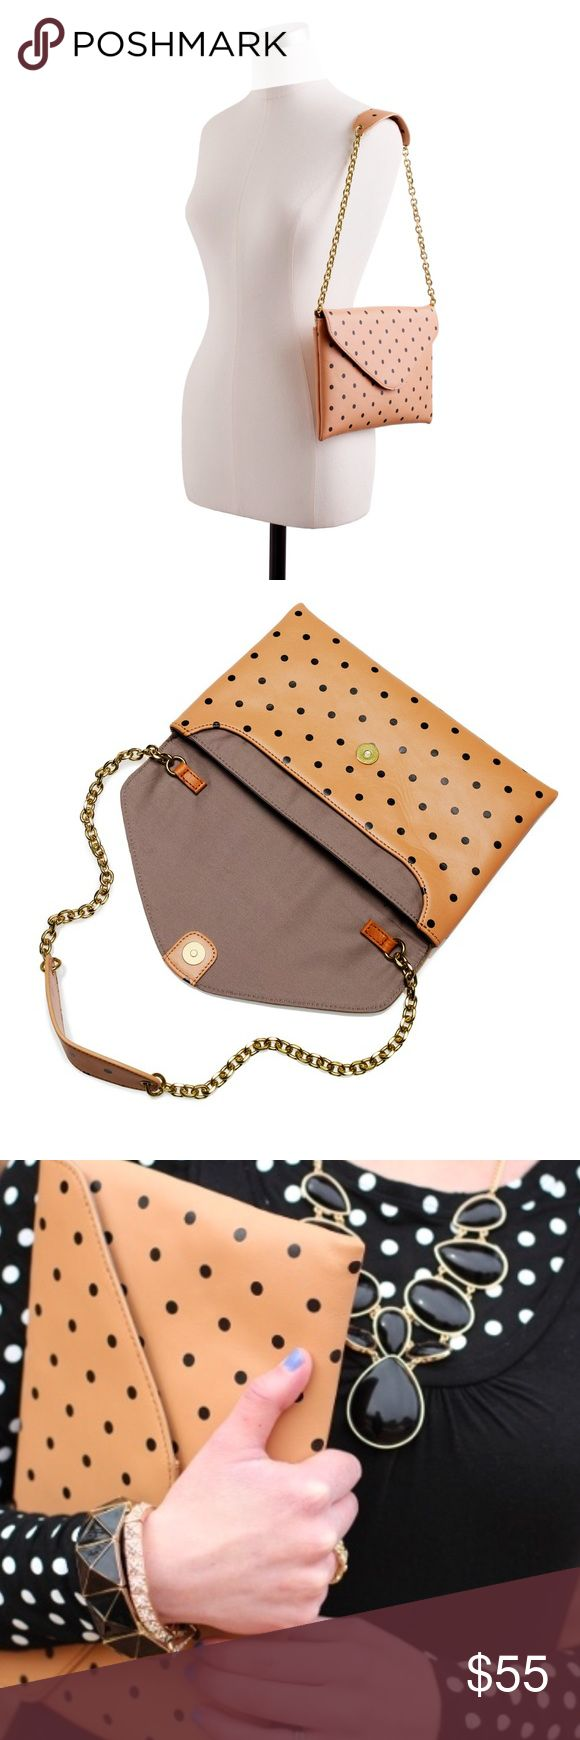 """J. Crew Invitation Clutch in Dot w/ Hideaway Chain From J. Crew:  """"Energetic dots are always on our """"do"""" list... Crafted in leather that'll last a lifetime and with a tuck-away golden chain, it has room to accommodate all your out-on-the-town essentials. Now in an unexpected black-on-tan color combo that's superversatile (and a not-so-girly version of one of our favorite clutches).  Leather. 11 1/2"""" handle drop. 7""""H x 11""""W x 3/4""""D.""""  This bag is NWT. One or two small marks on front of bag…"""